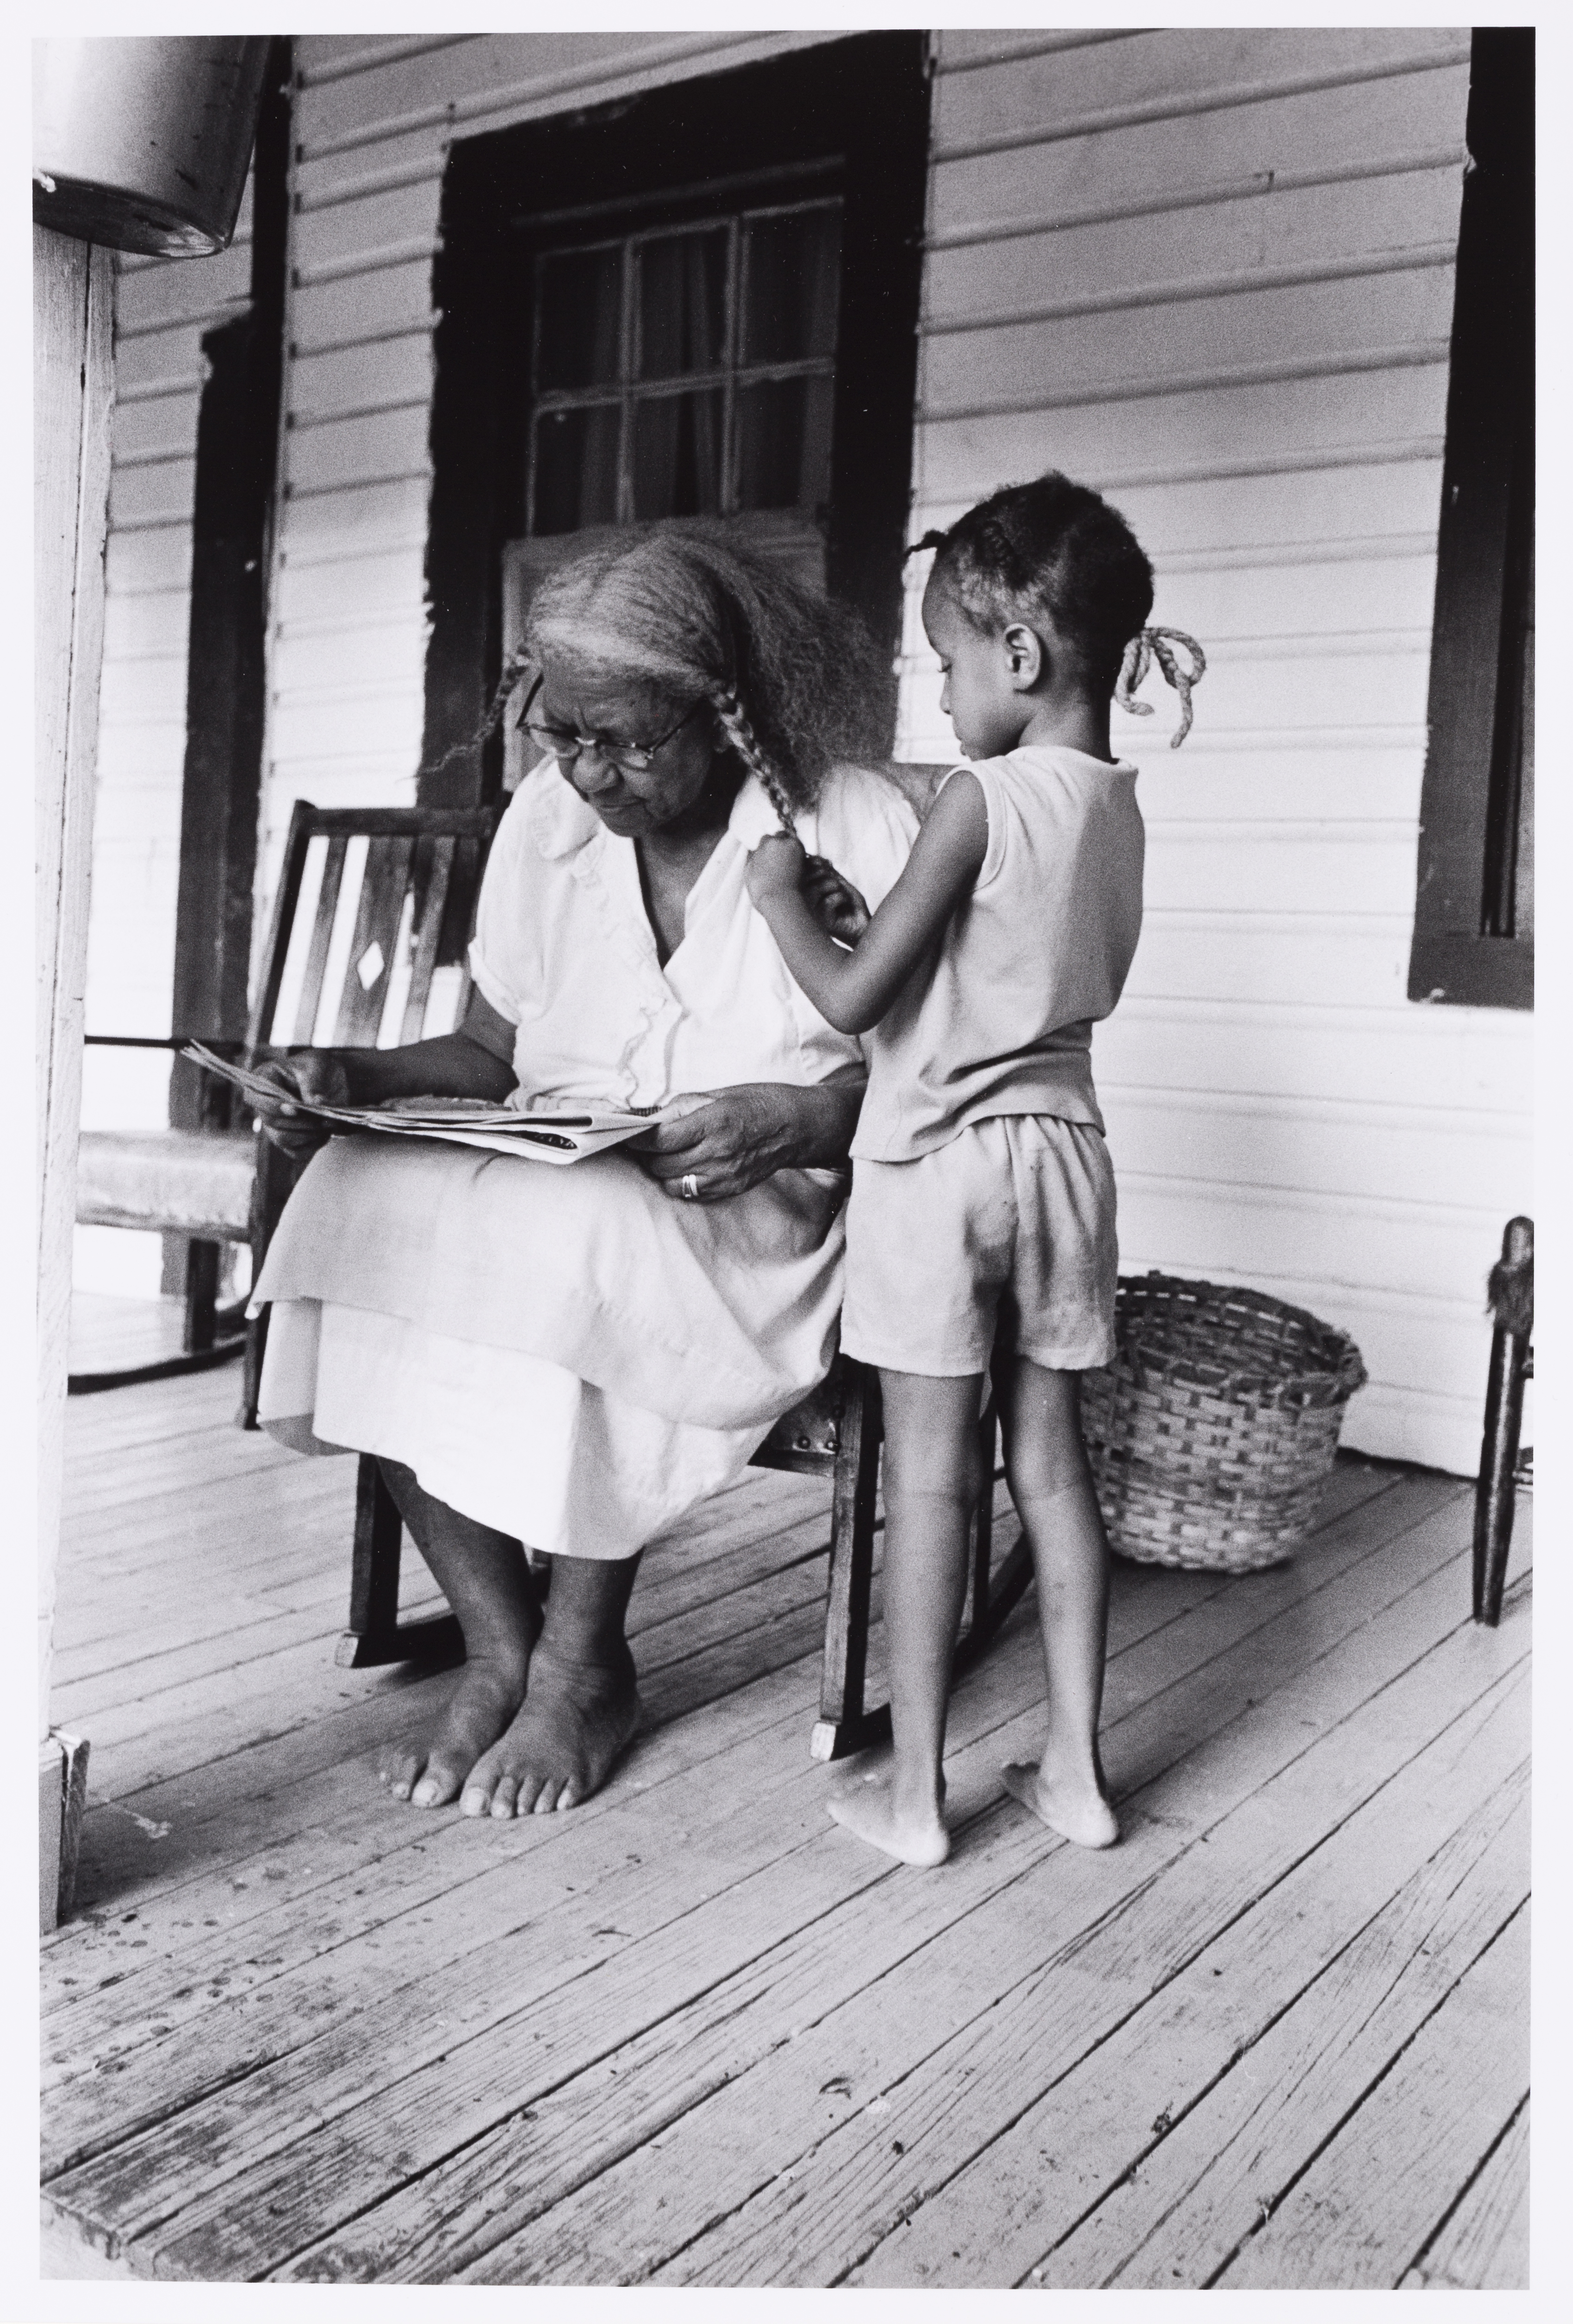 Older dark-skinned woman reading in a rocking chair on a porch while a child braids her hair